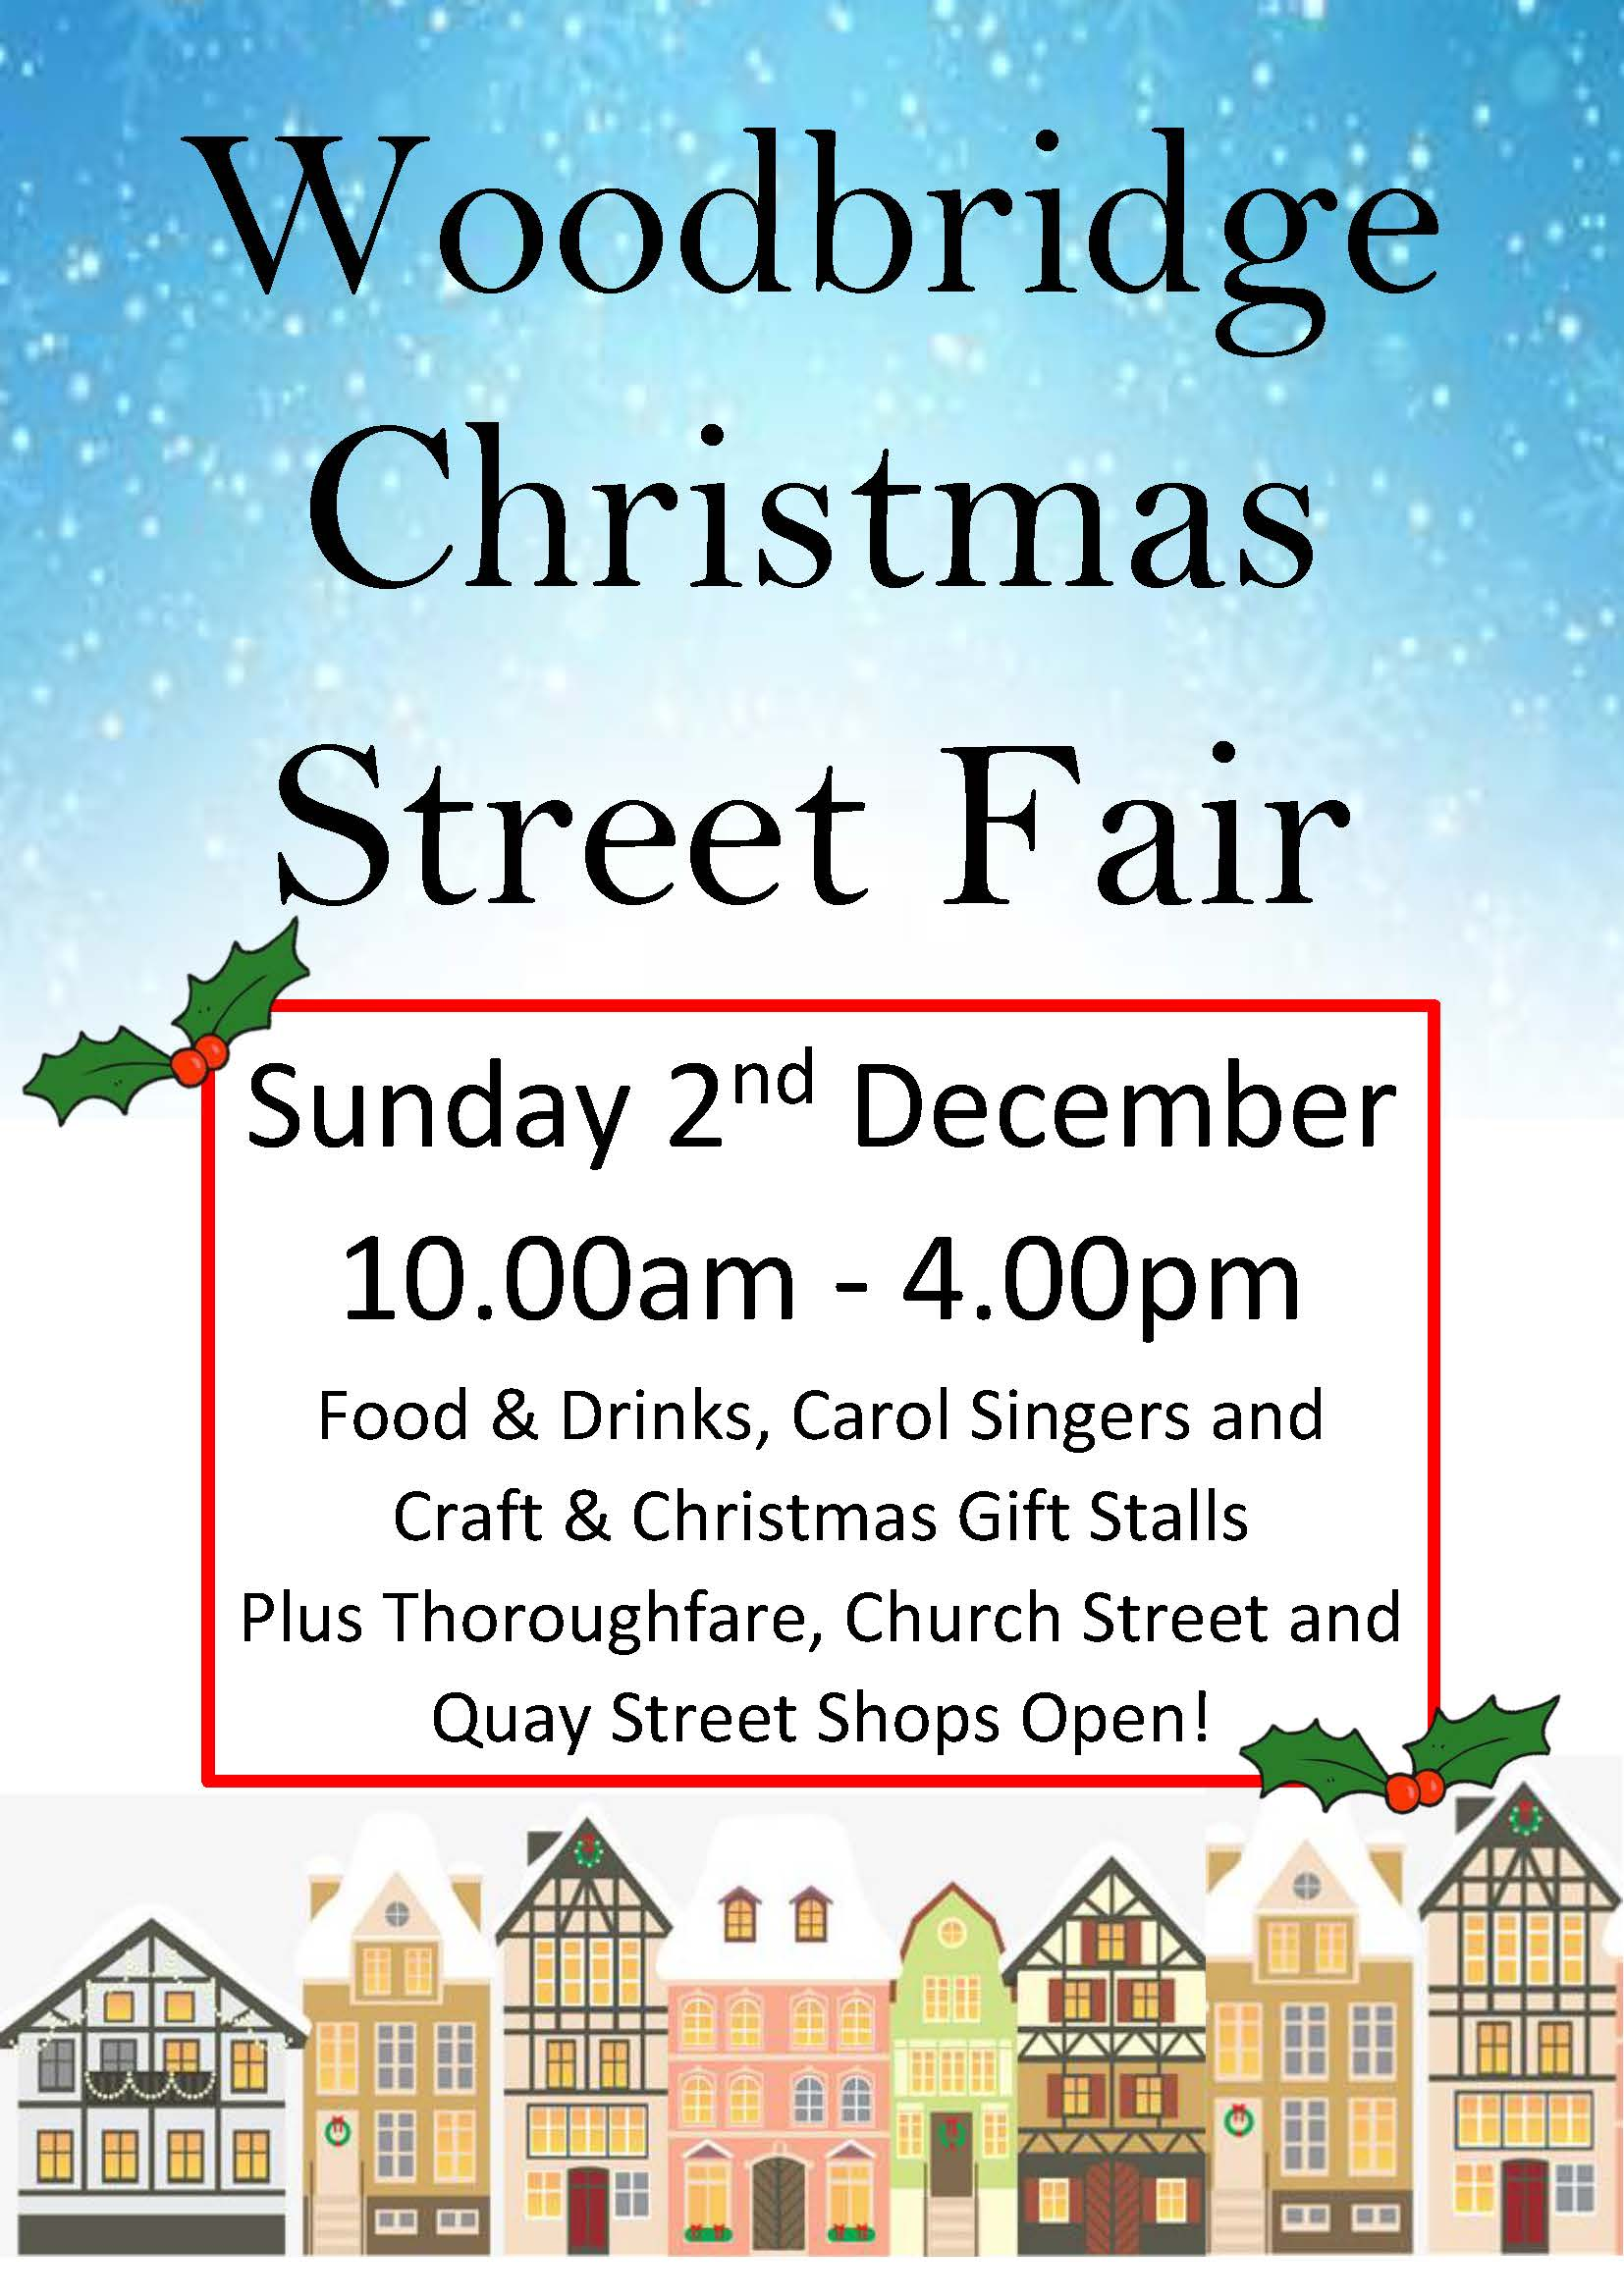 Woodbridge Christmas Street Fair - 2nd December - Choose Woodbridge